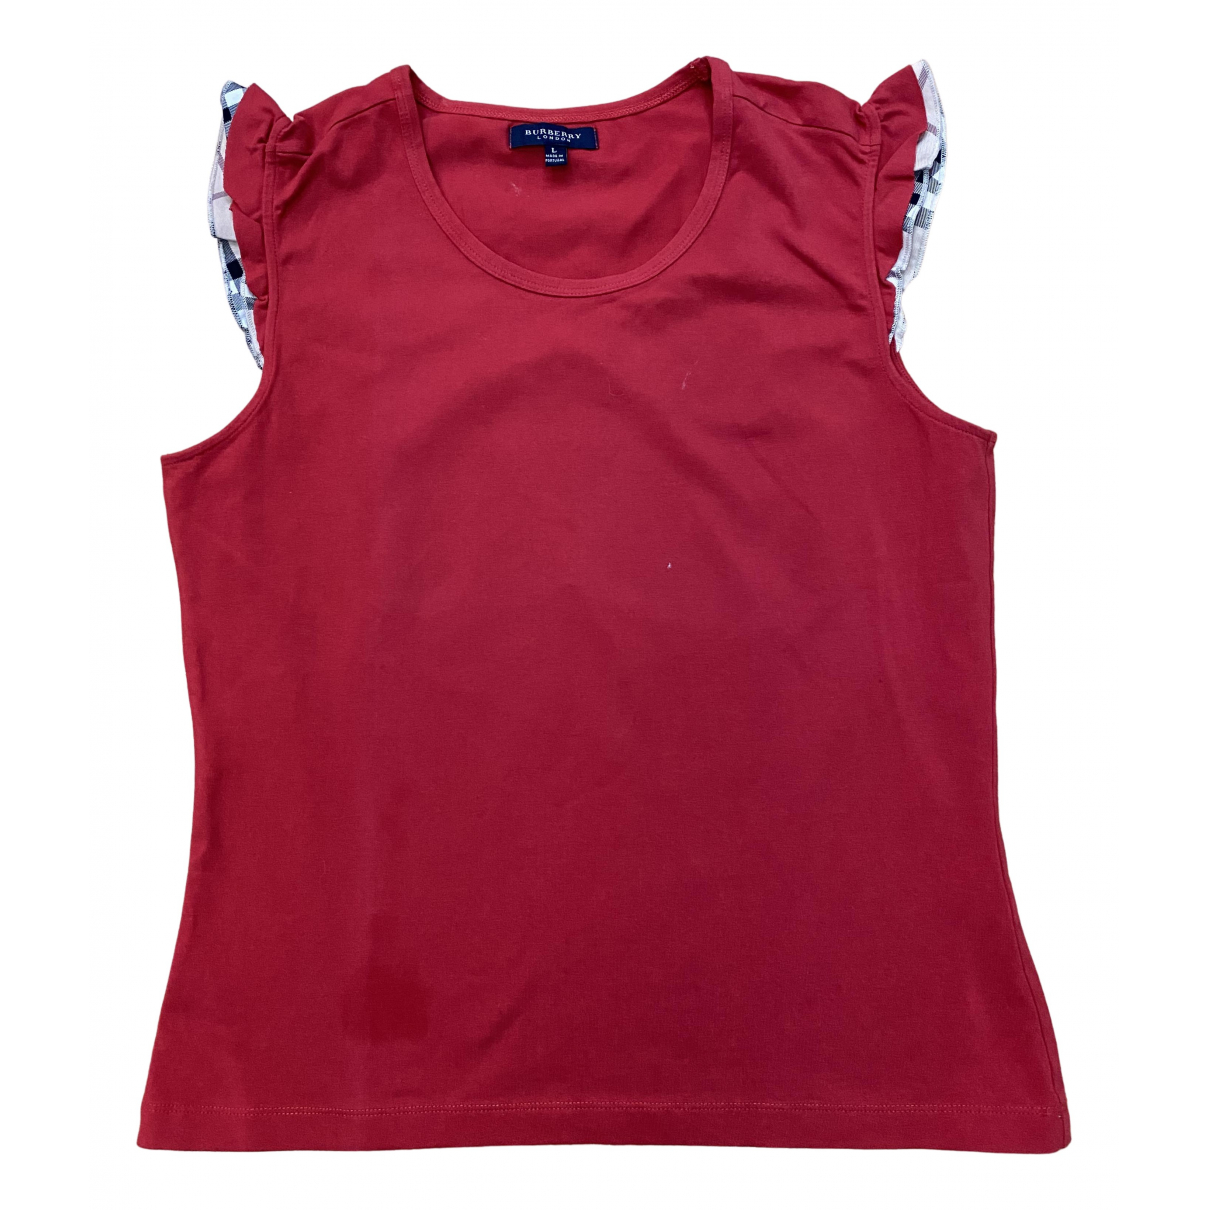 Burberry \N Red Cotton  top for Women L International